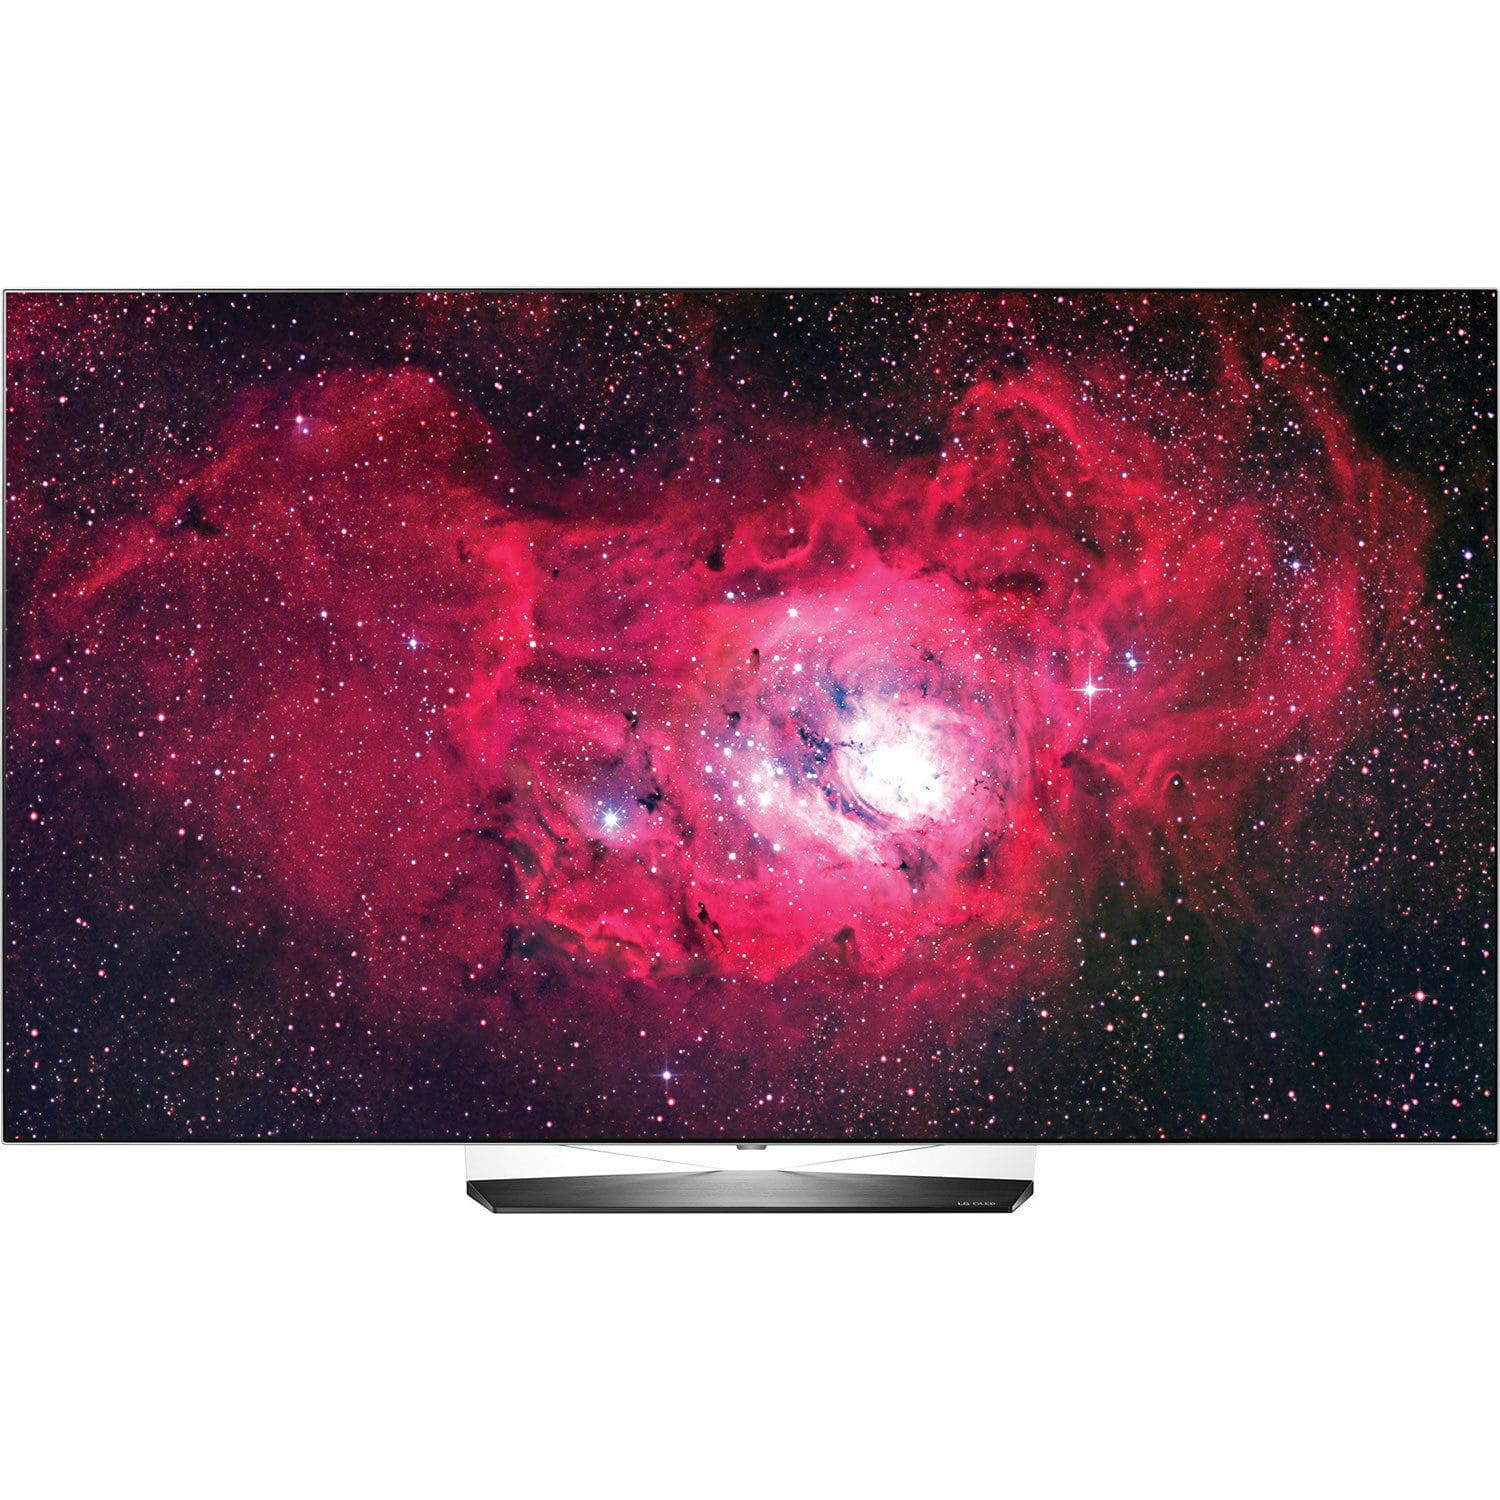 65 inch LG OLED65B7A 4k Ultra HD Smart OLED TV on eBay - $2099.99